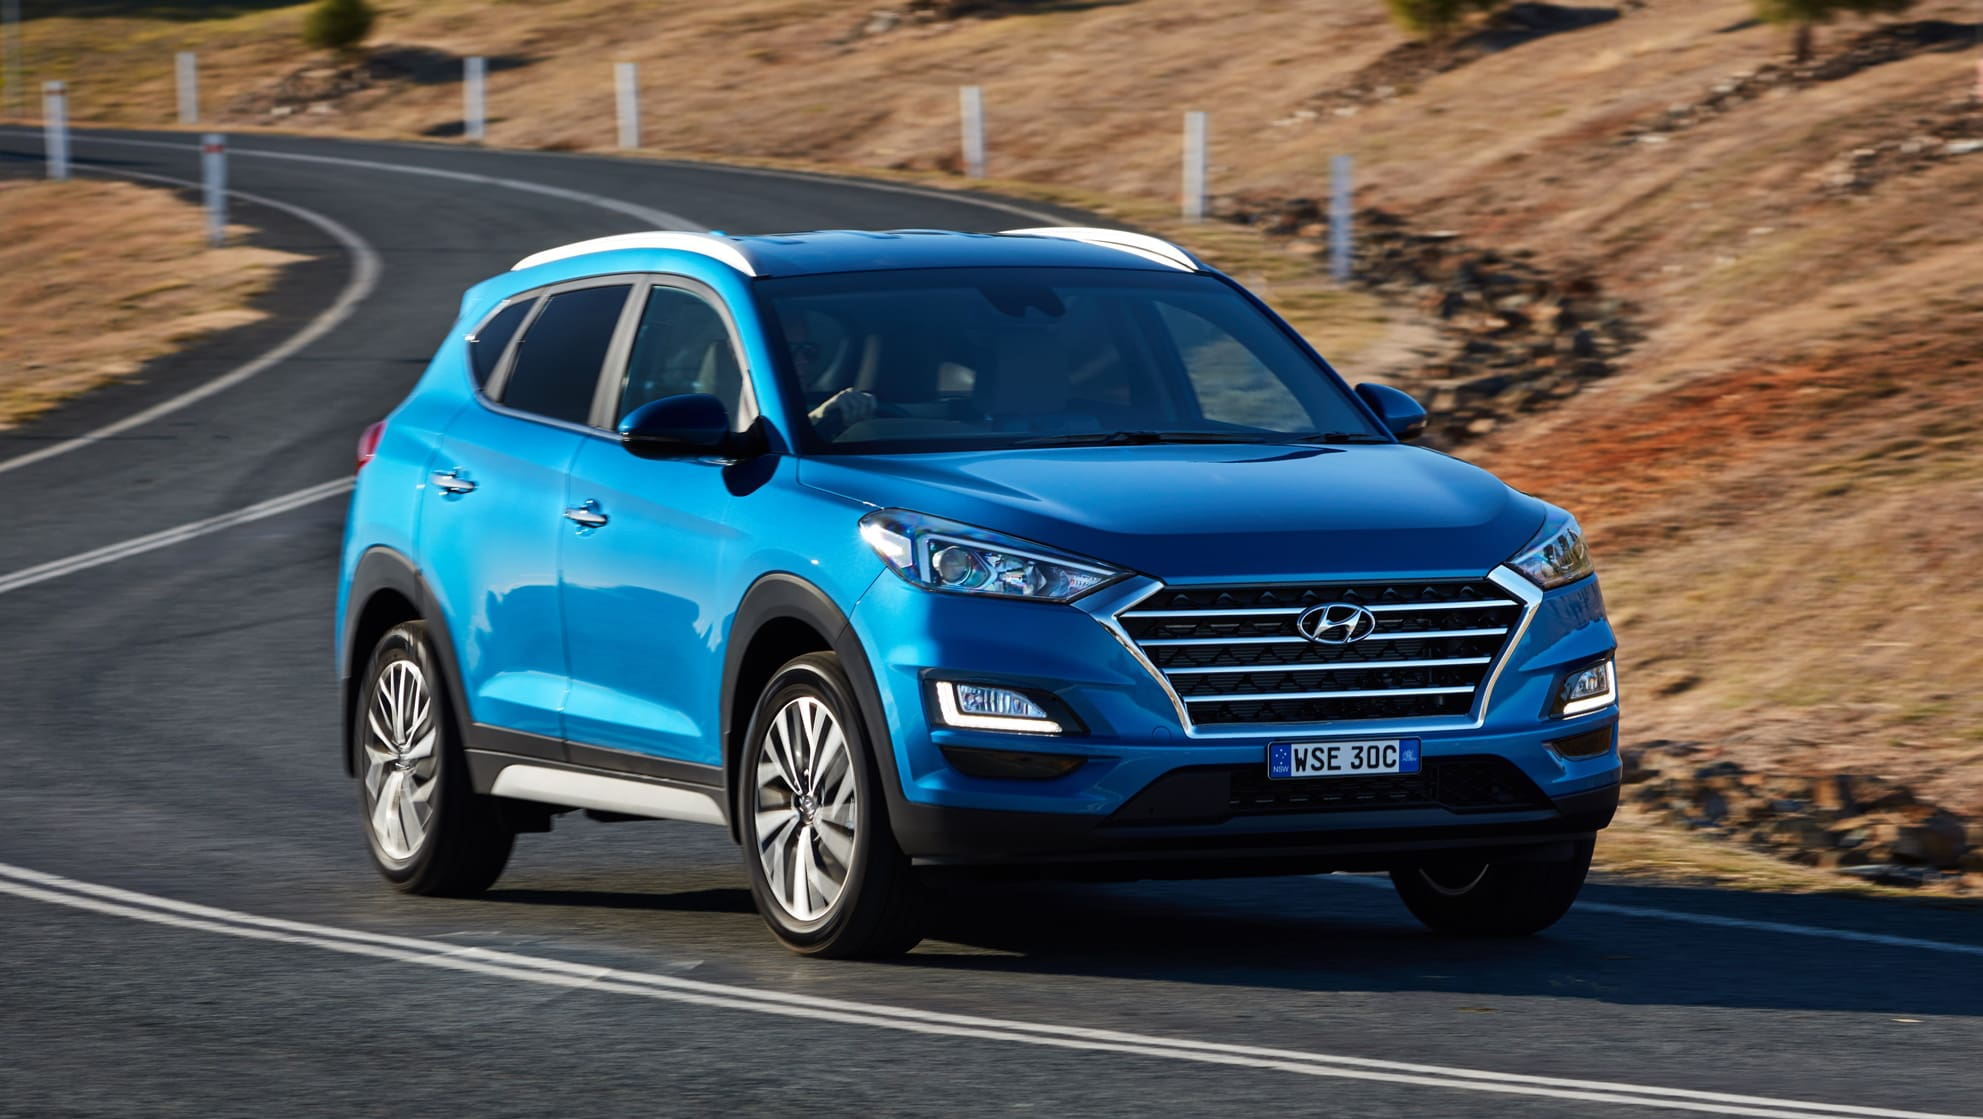 Hyundai Tucson 2018 Pricing And Spec Confirmed Car News